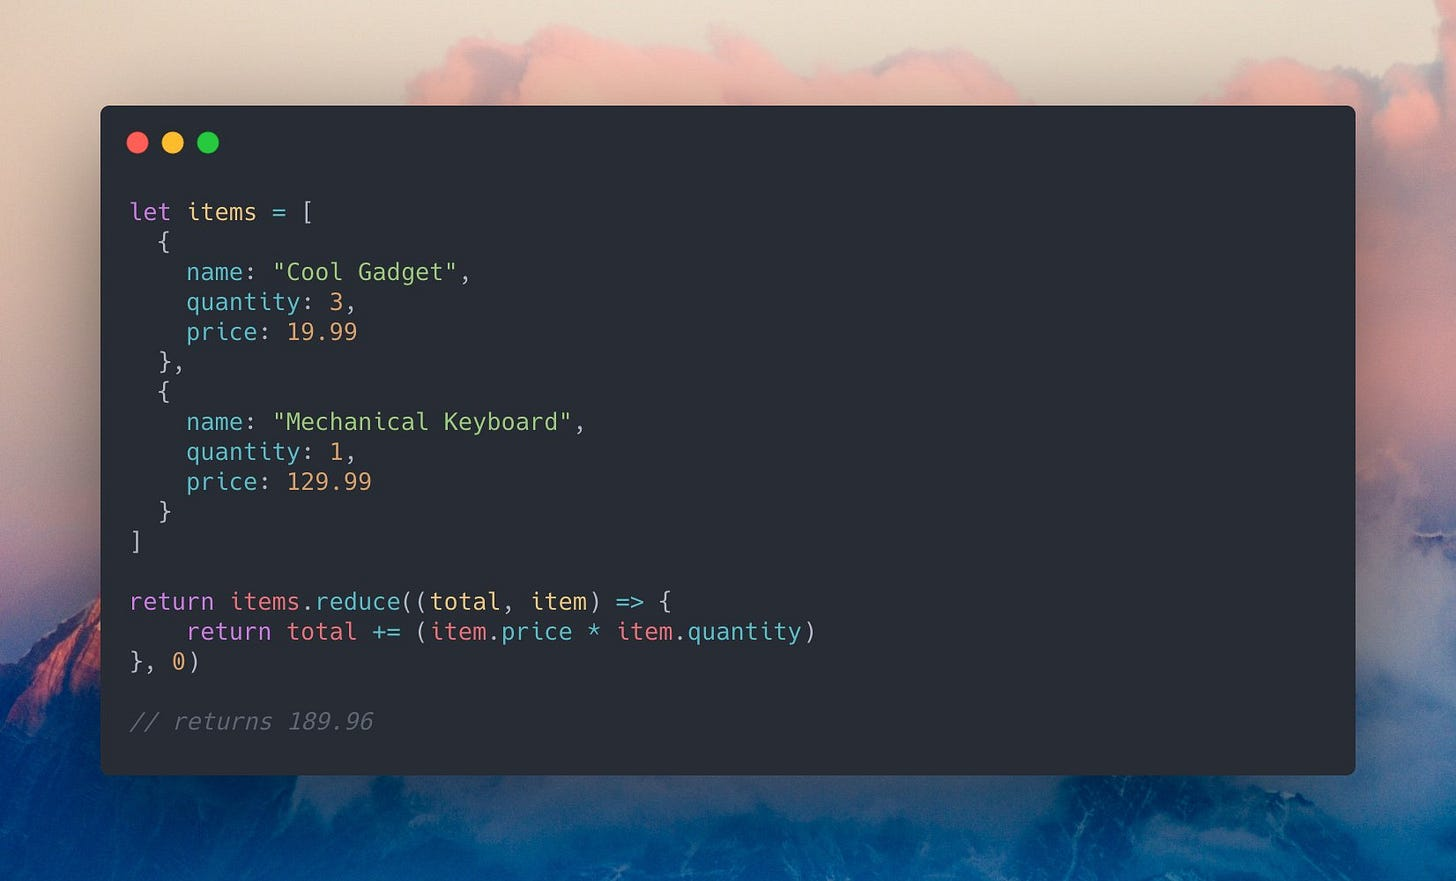 """A JavaScript code example that reads: `let items = [{ name: """"Cool Gadget"""", quantity: 3, price: 19.99 },{ name: """"Mechanical Keyboard"""", quantity: 1, price: 129.99 }]; return items.reduce((total, item) => { return total += (item.price * item.quantity) }, 0); // returns 189.96`"""